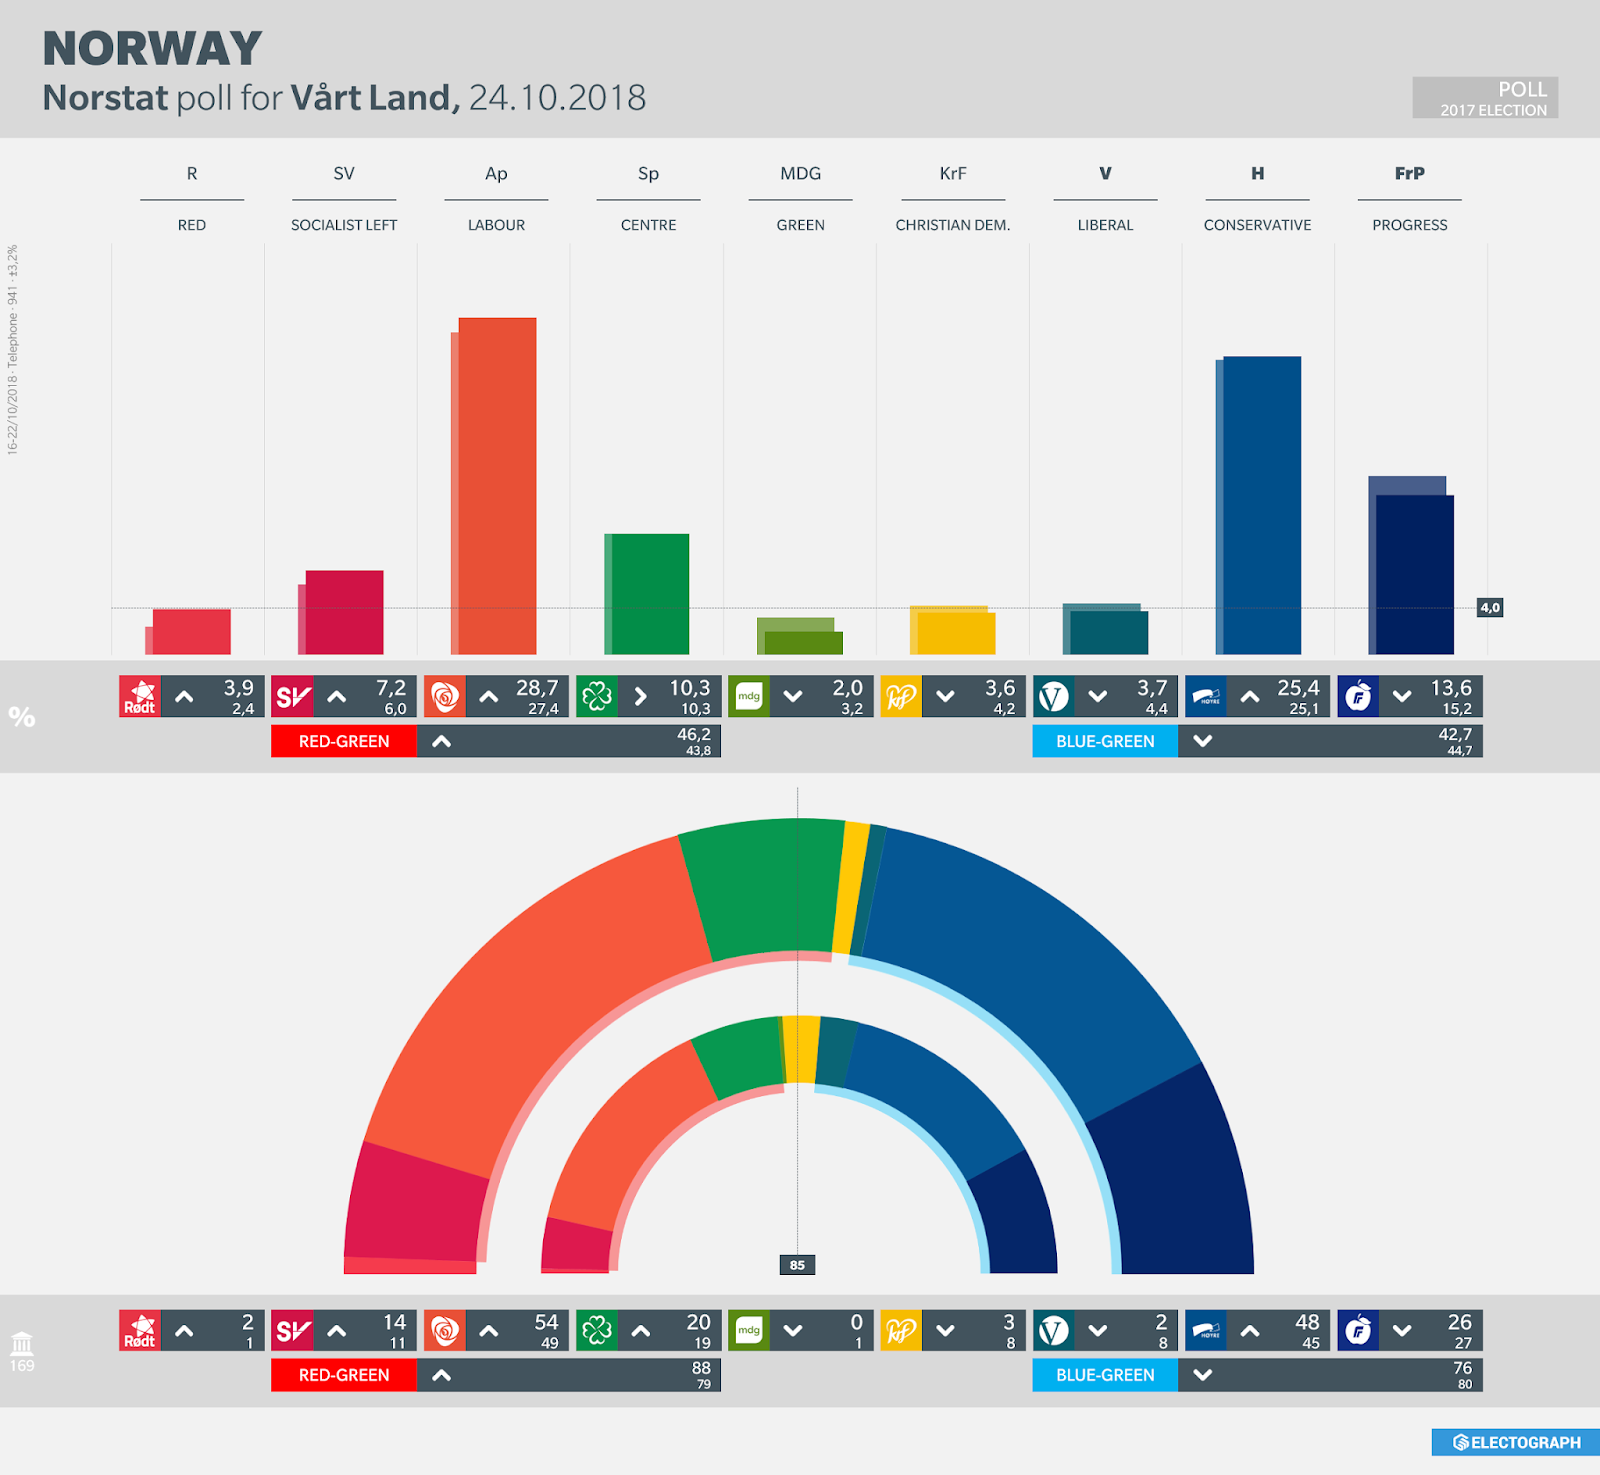 NORWAY: Norstat poll chart for Vårt Land, October 2018